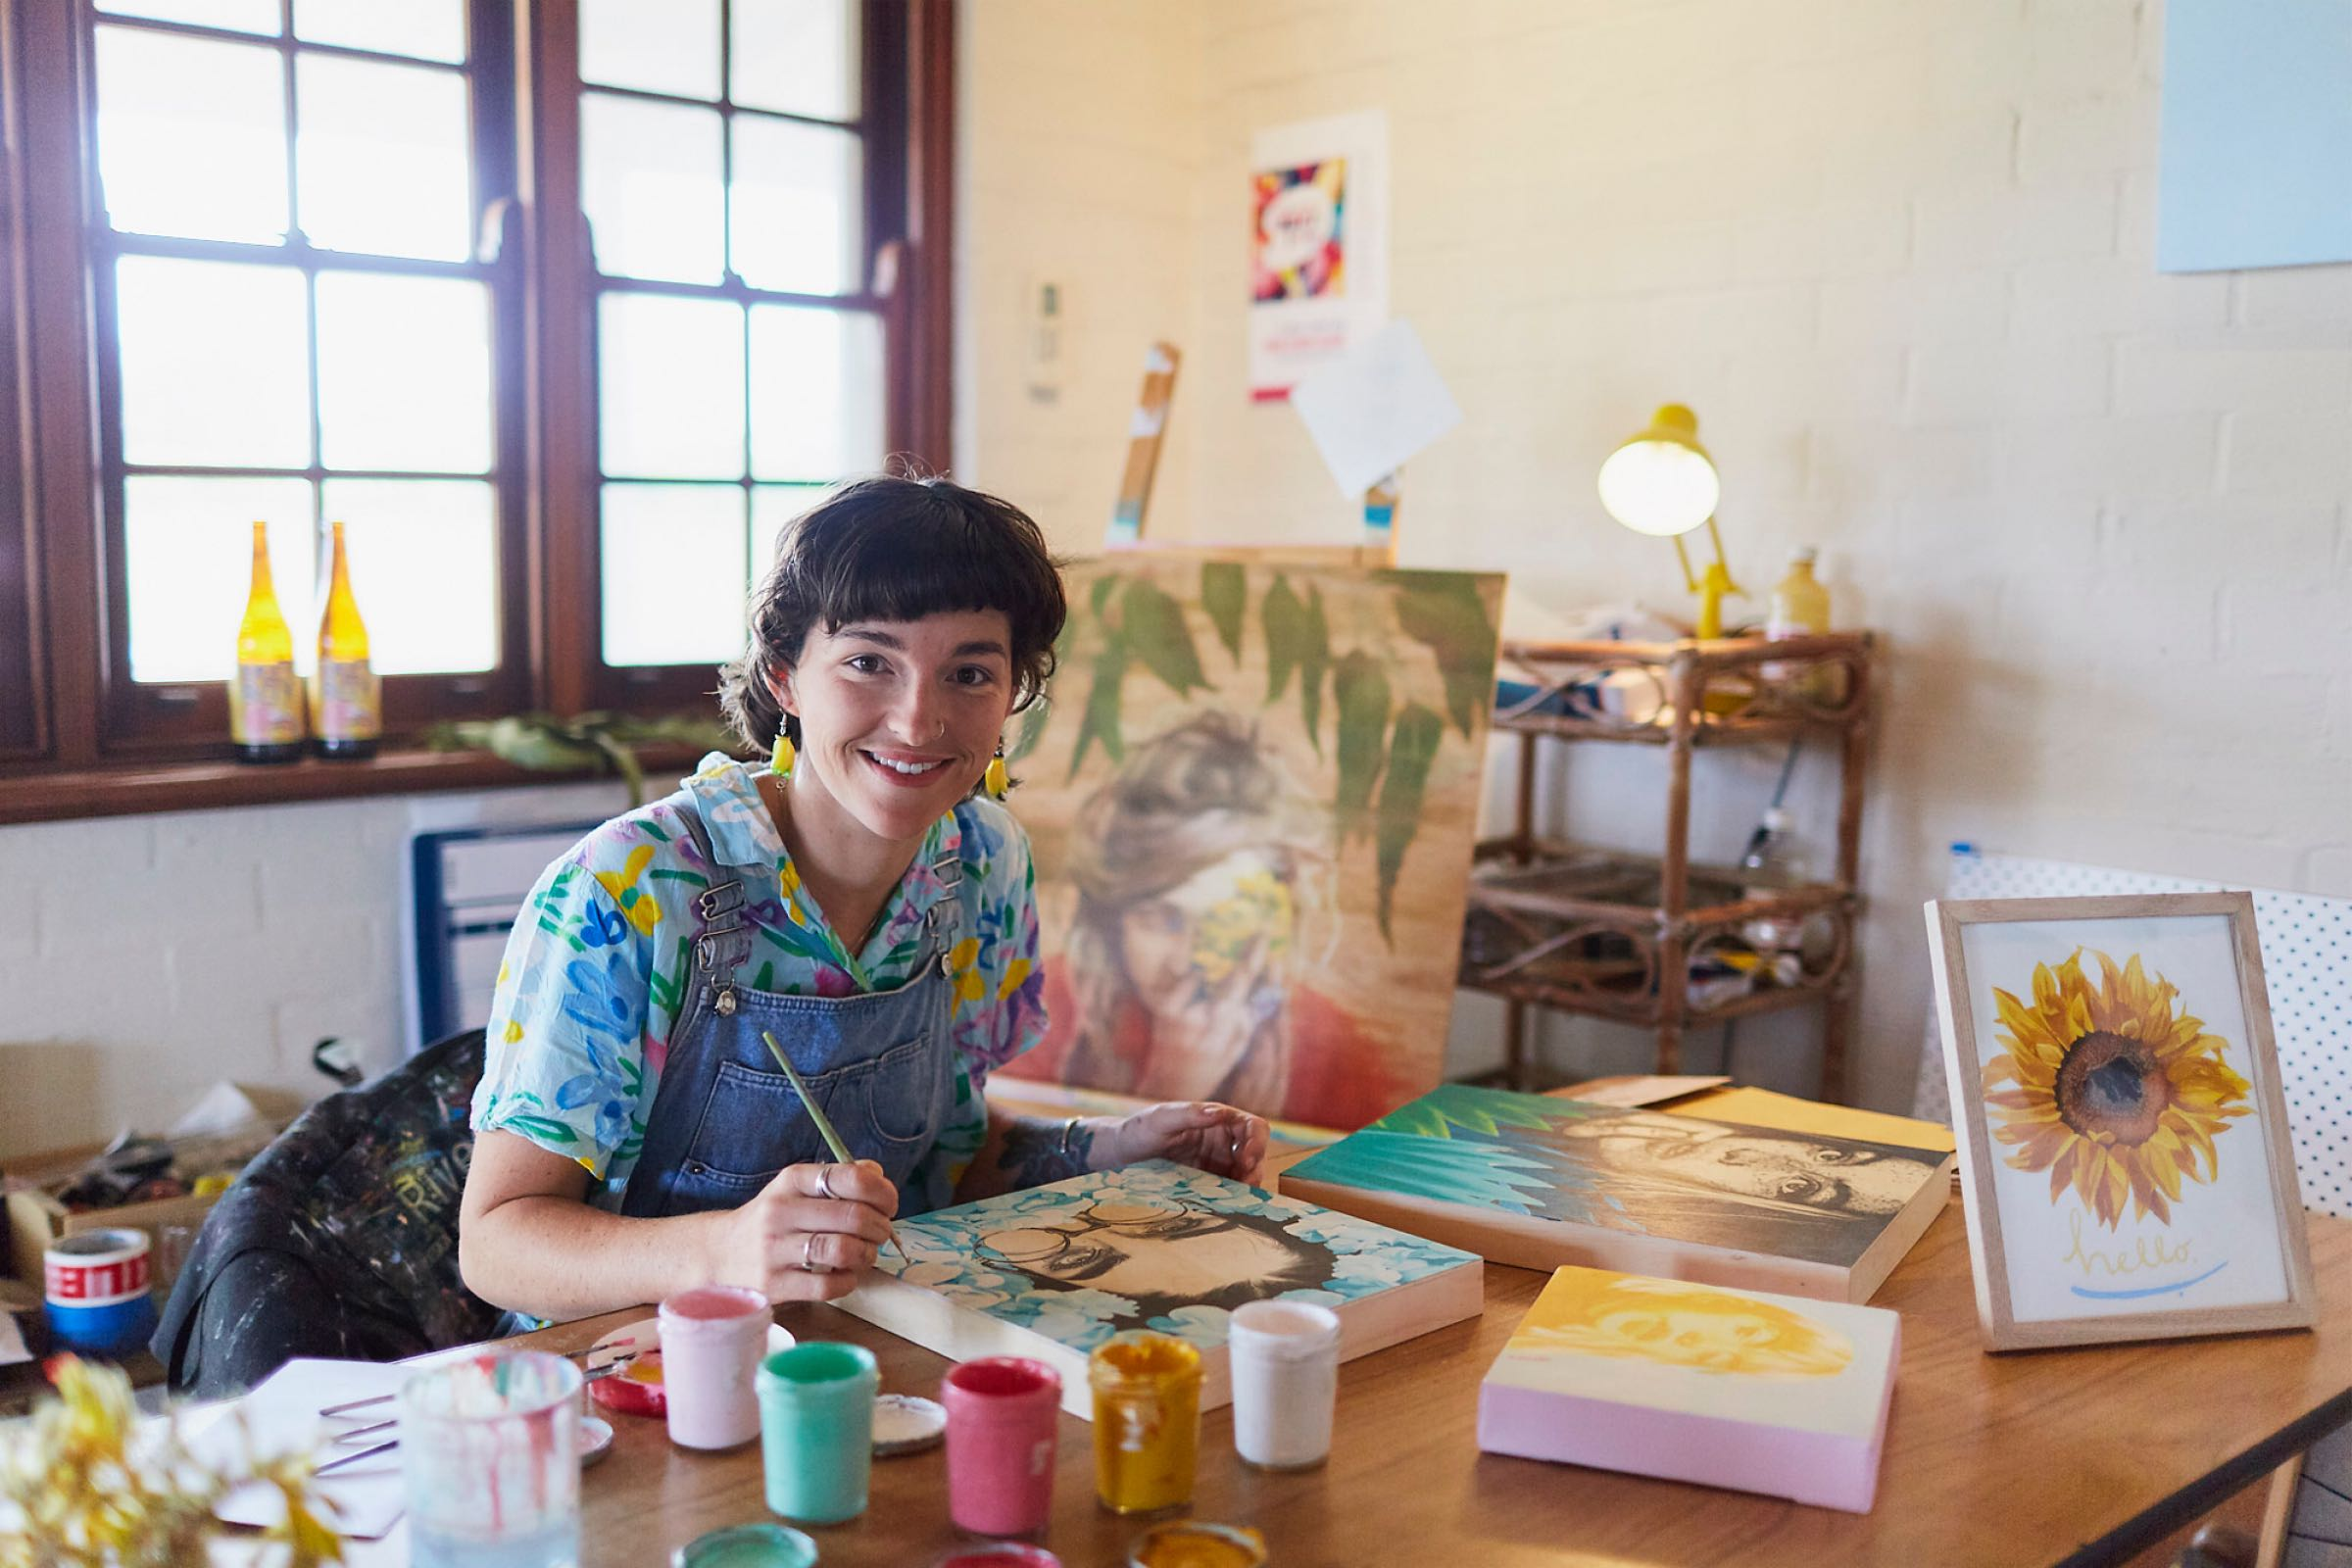 Margaret River Artists Make Final Flourishes Before Annual Open Studios Event Next Month